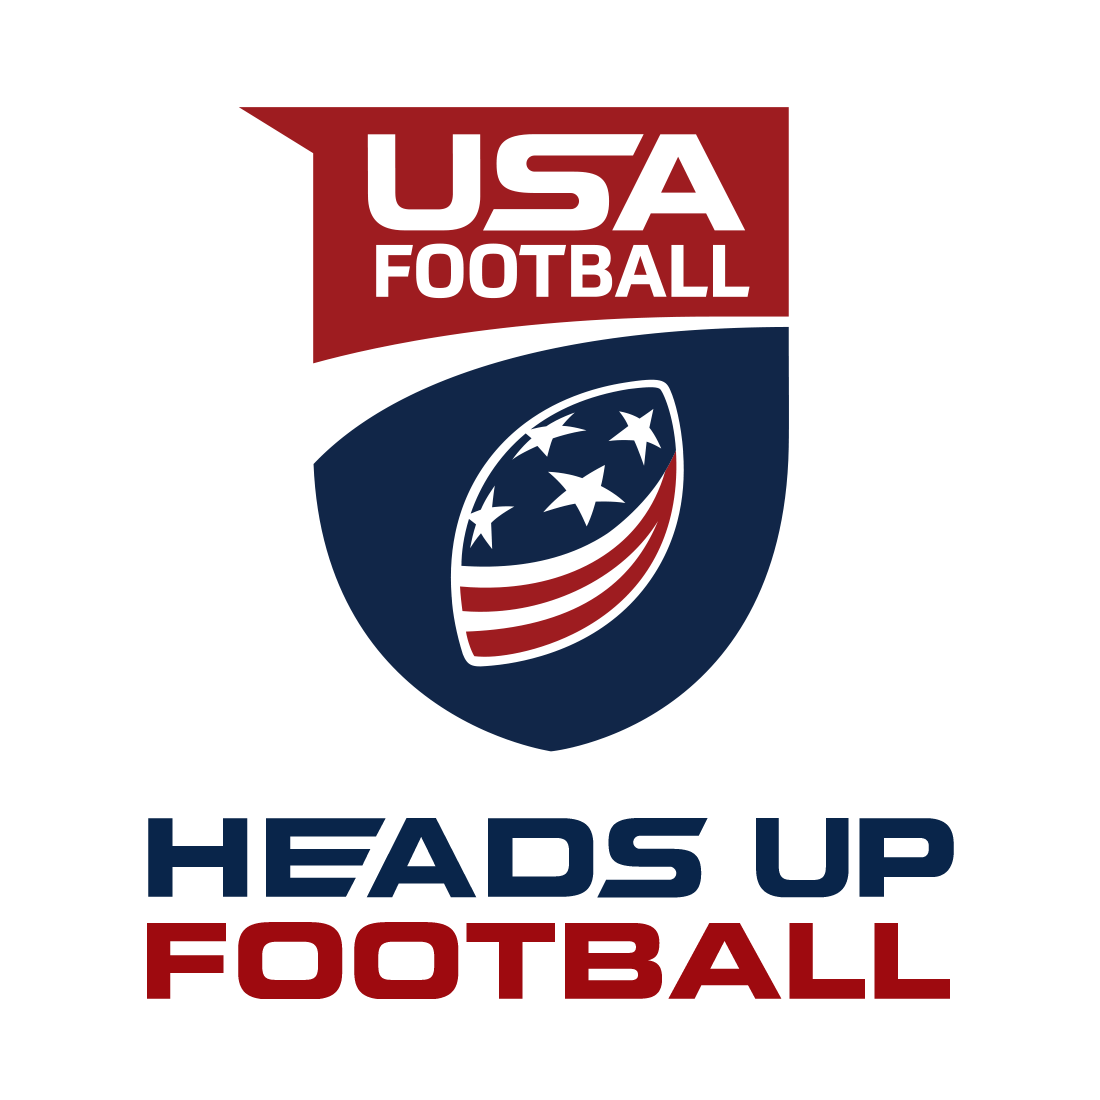 Havre de grace youth football is a usafootball certified heads up